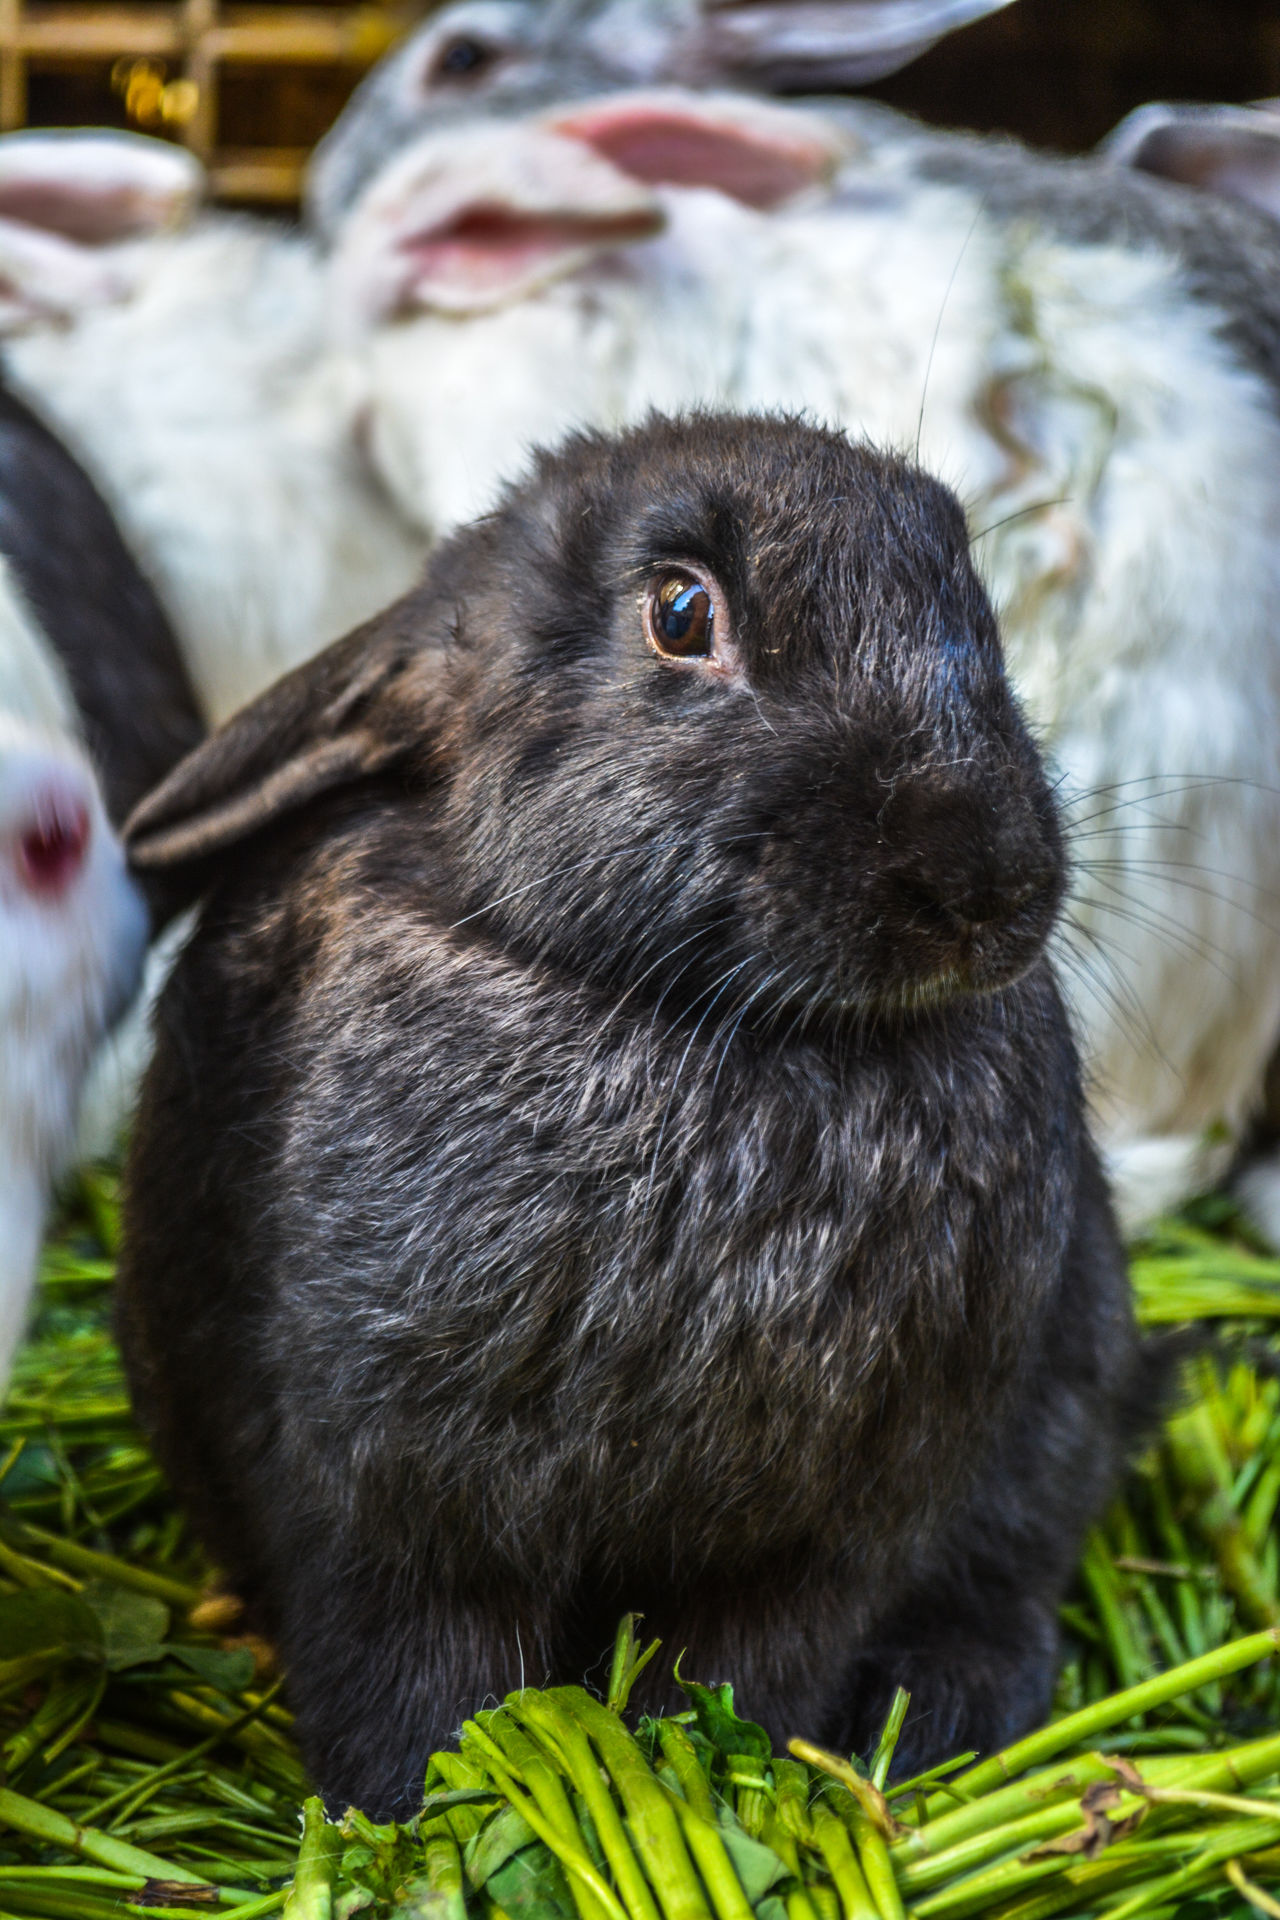 Rabbit Animal Themes Grass Outdoors No People Close-up Rabbit 🐇 Animals Animal Photography Rabbits Animal Head  Animal Eye Rabbit ❤️ Rabbit Ears Pets Rabbit - Animal Looking